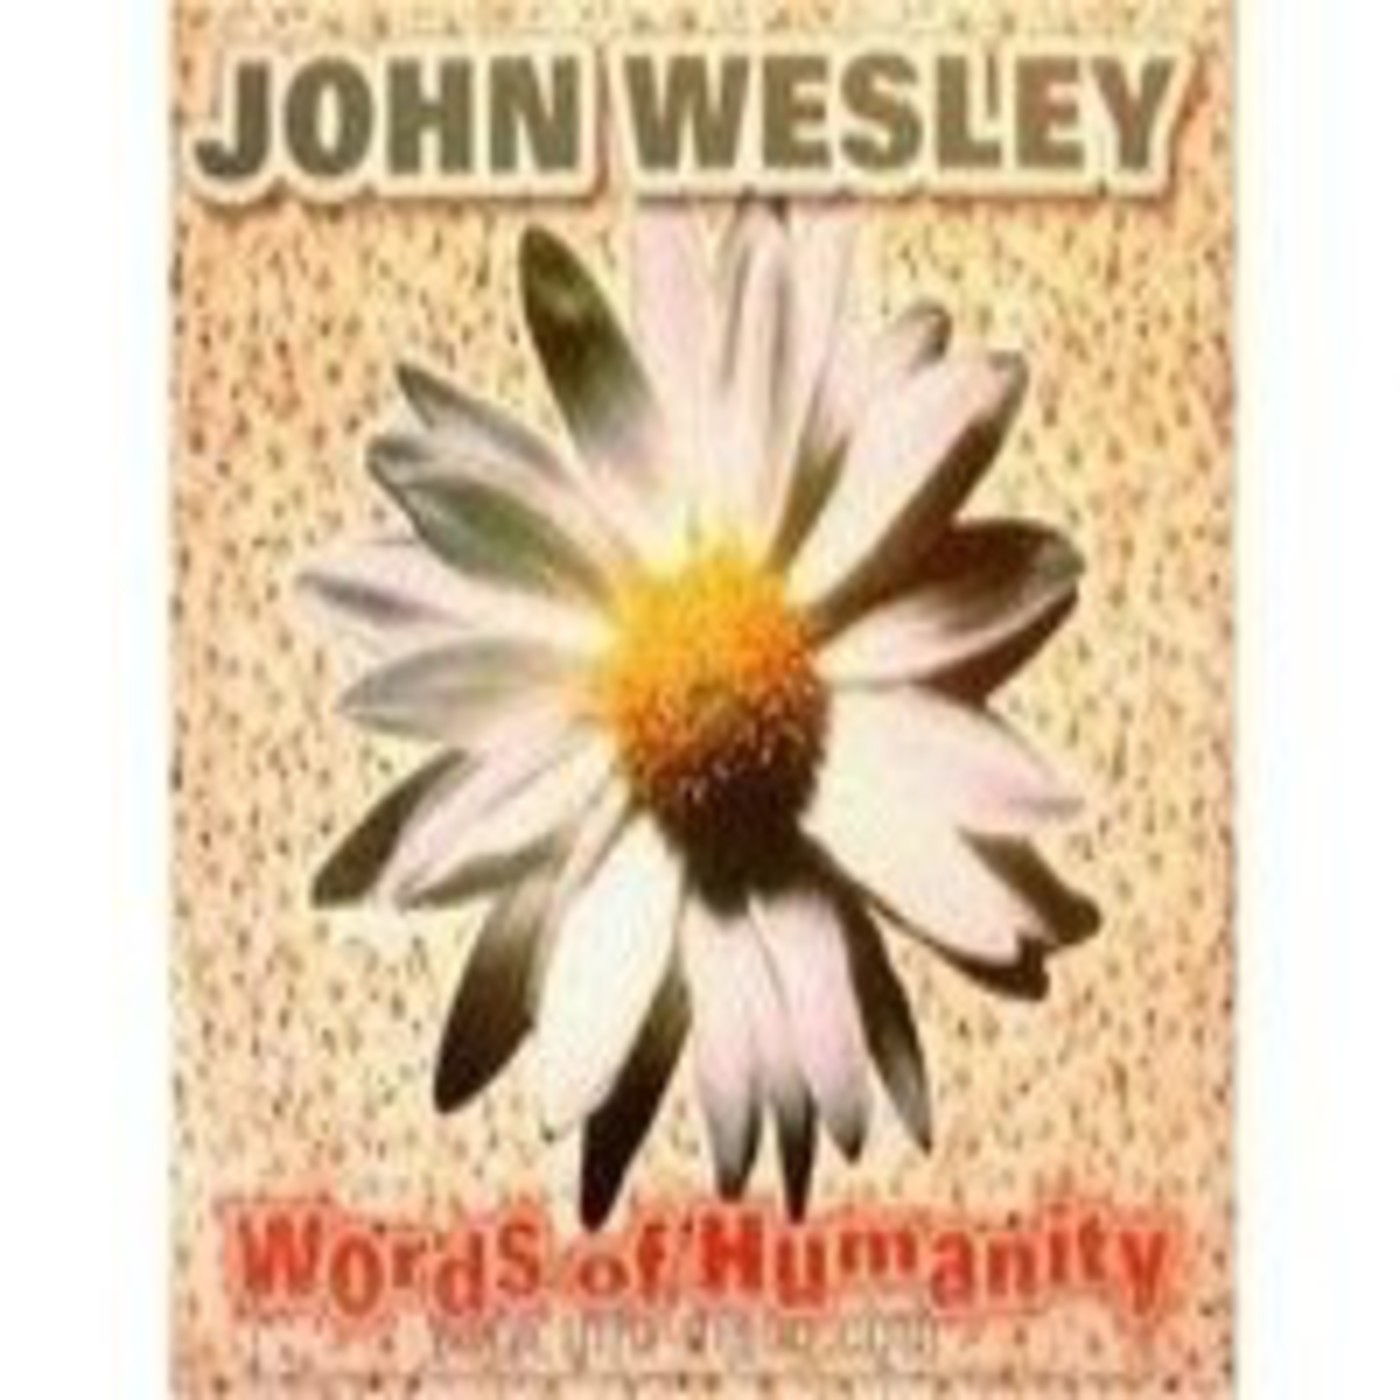 JOHN WESLEY - Words of humanity (1997)